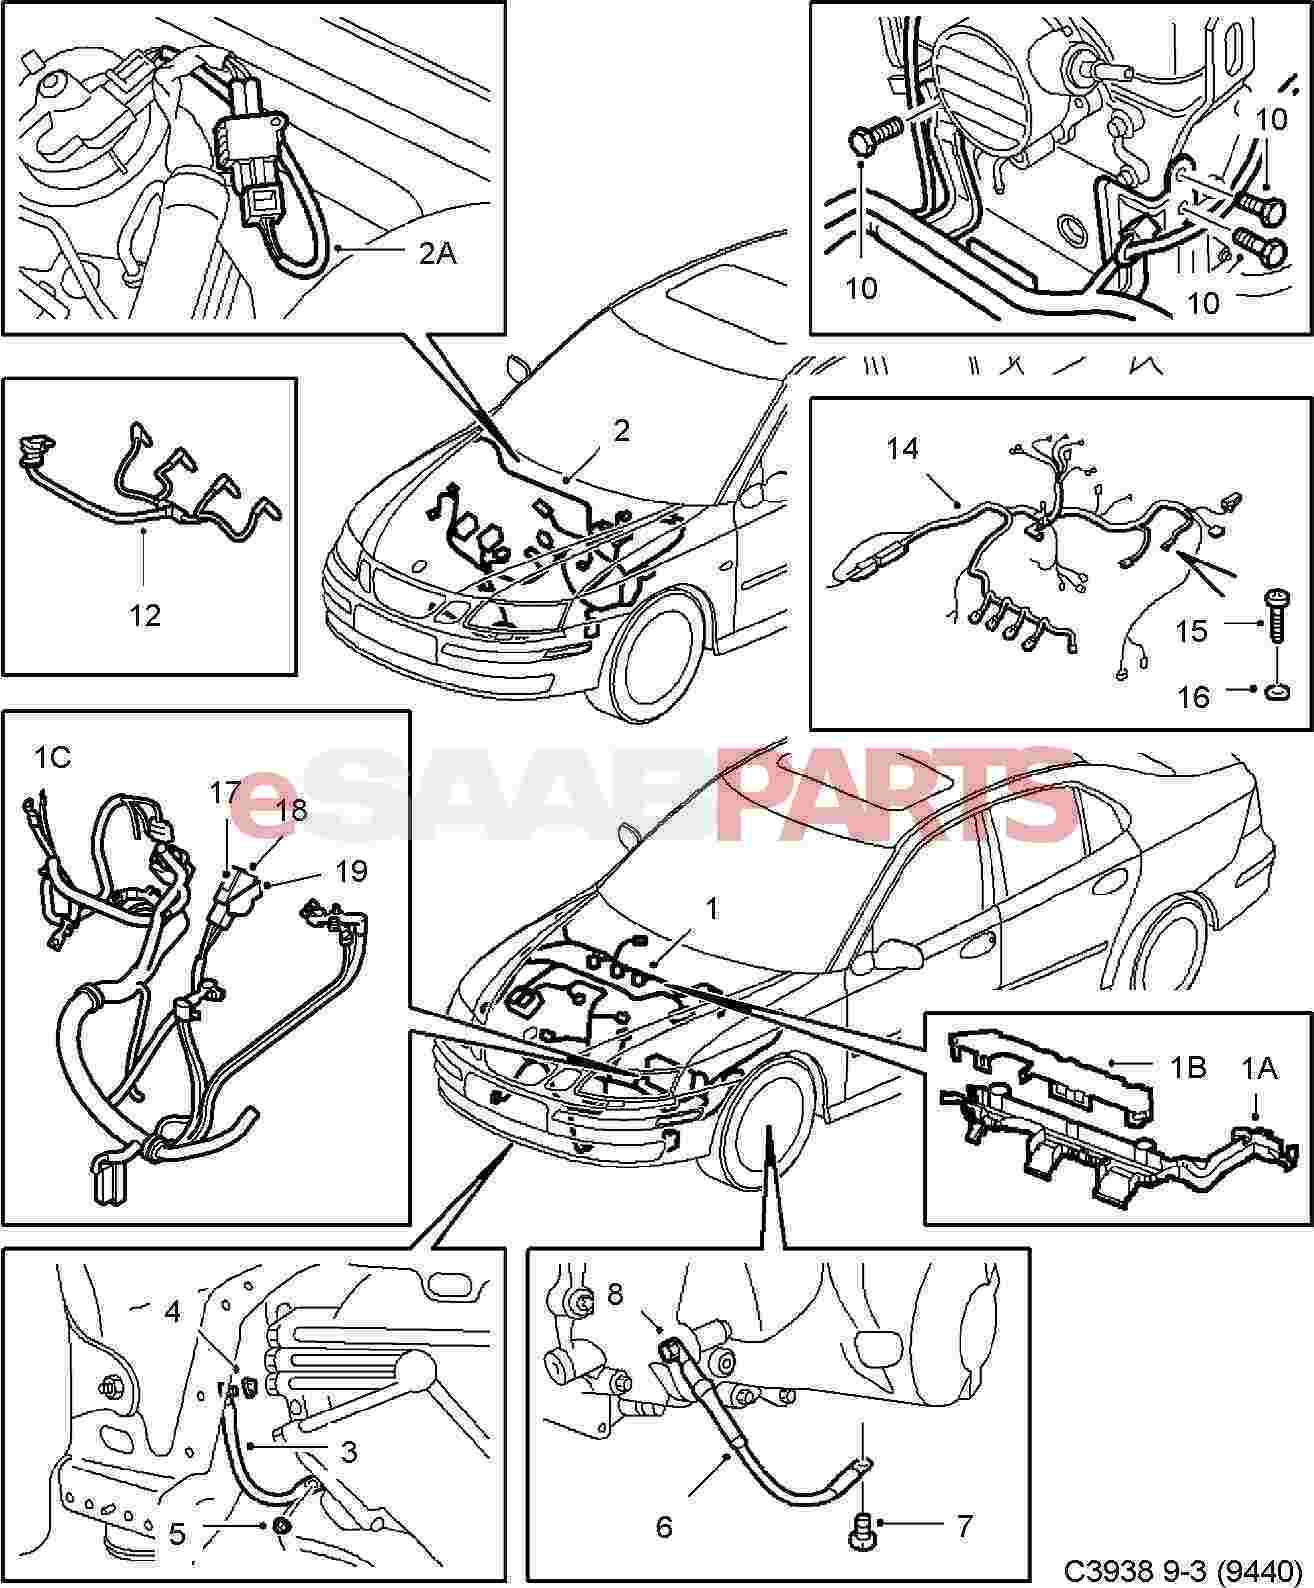 eSaabParts.com - Saab 9-3 (9440) > Electrical Parts > Wiring Harness:  Engine/Transmission > Motor, TransmissioneSaabParts.com